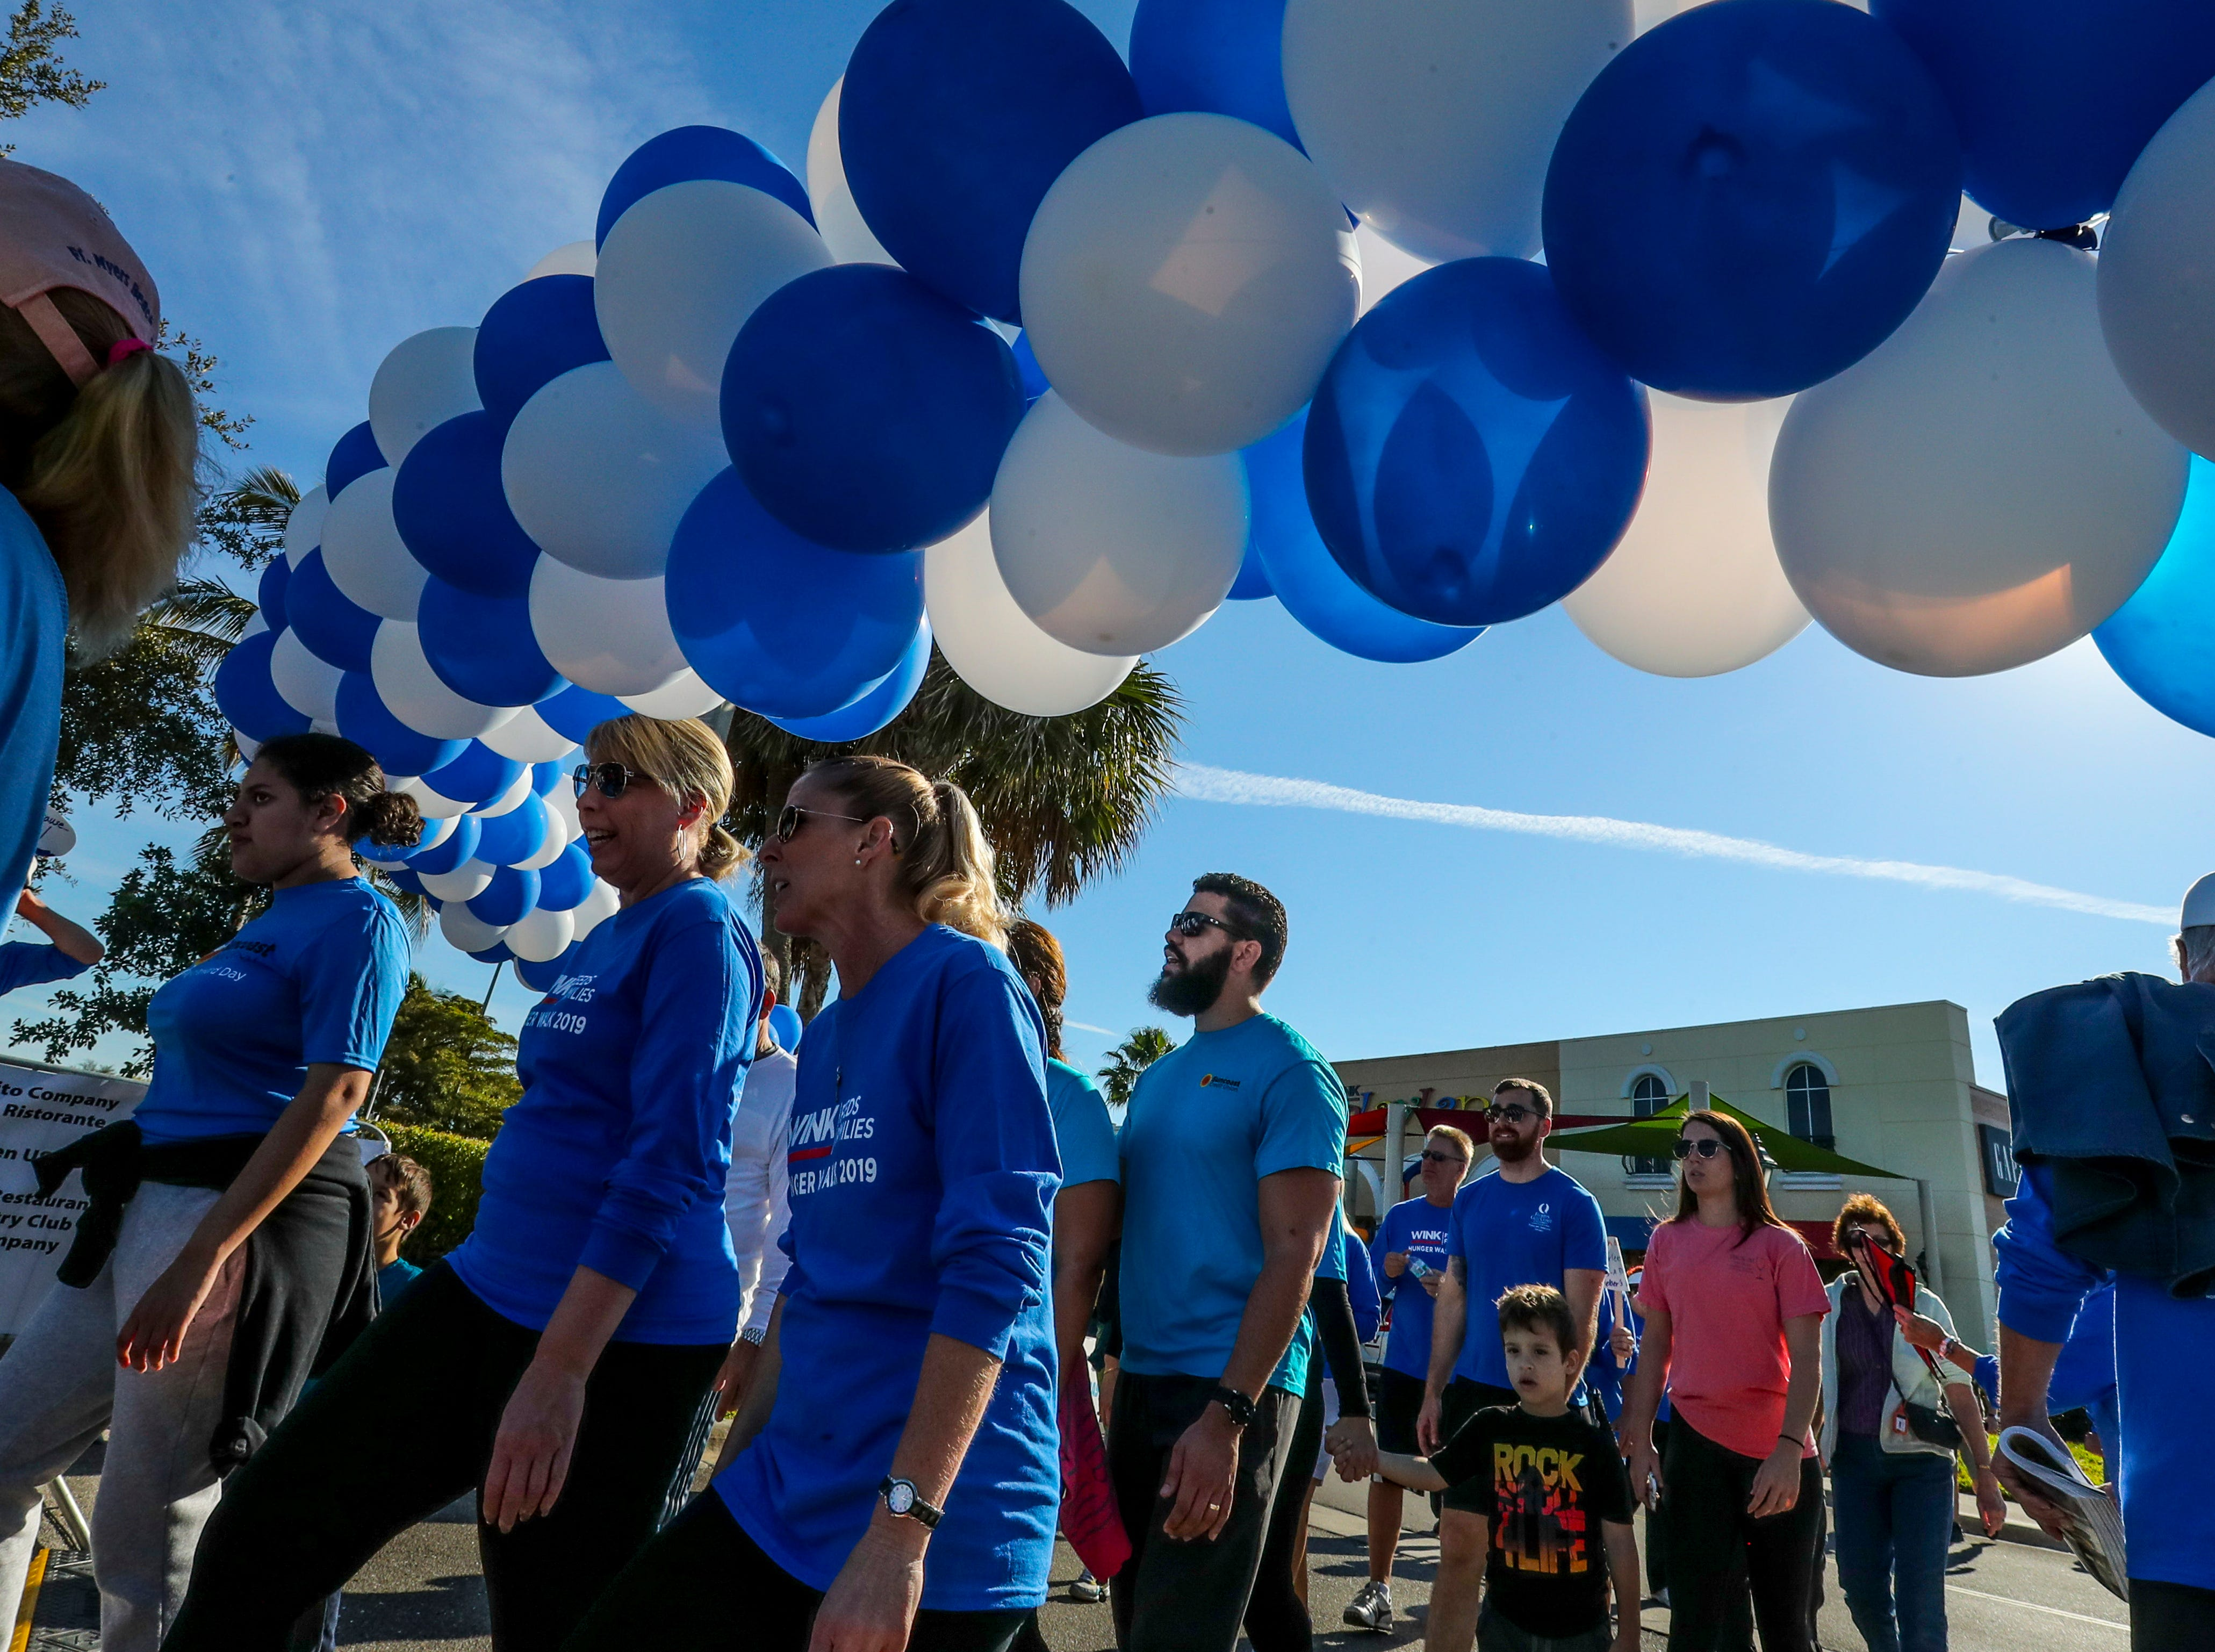 The 11th annual WINK Feeds Family hunger walk that supports the Harry Chapin Food Bank of Southwest Florida went off Saturday, January 19, 2019. The walk was held at Miromar Outlets in Estero, FL, and they did a 2 mile walk around the mall.